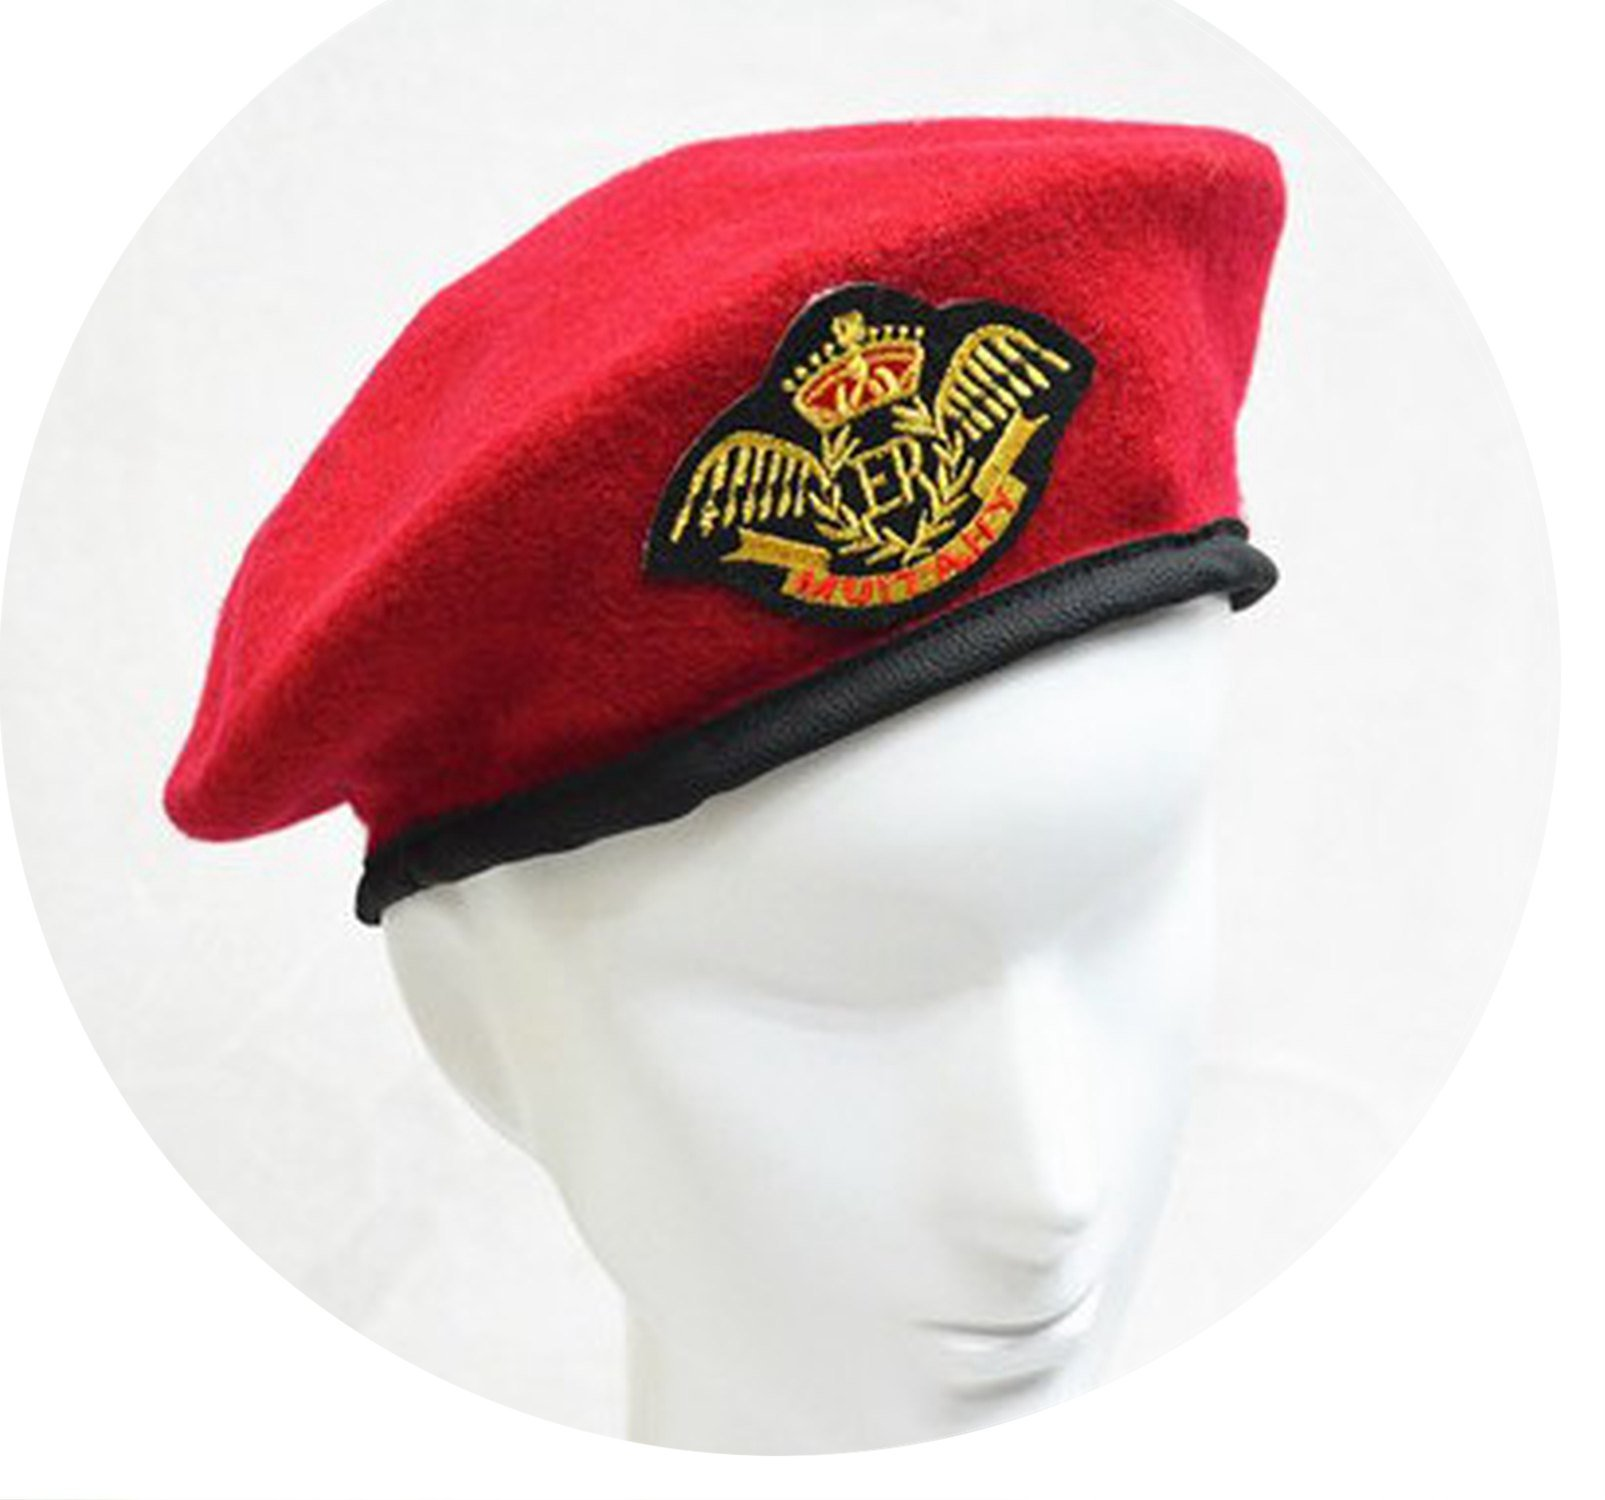 100% Wool Hat Performing Expendables Airline Stewardess Uniform Sailor Dance Metal Beret Hats,Eagle Wine Red